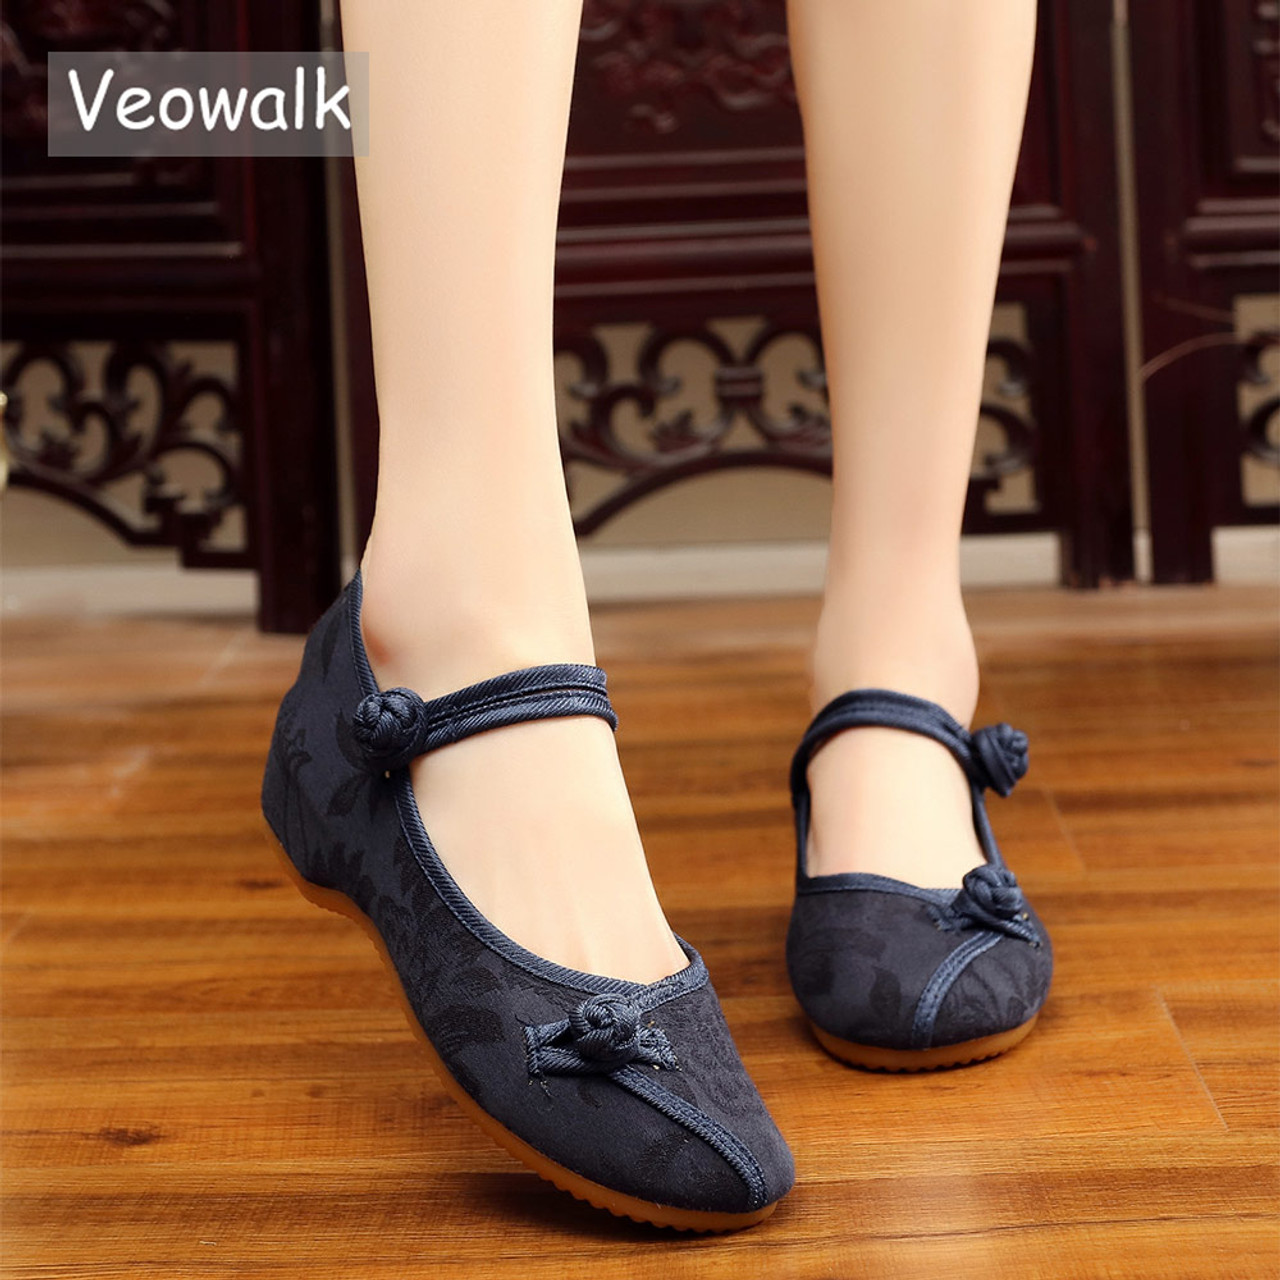 1166e5460a1eb Veowalk Chinese Classic Style Women Cotton Fabric Embroidered Ballet Flats  Elegant Ladies Casual Comfort Canvas Walking Shoes